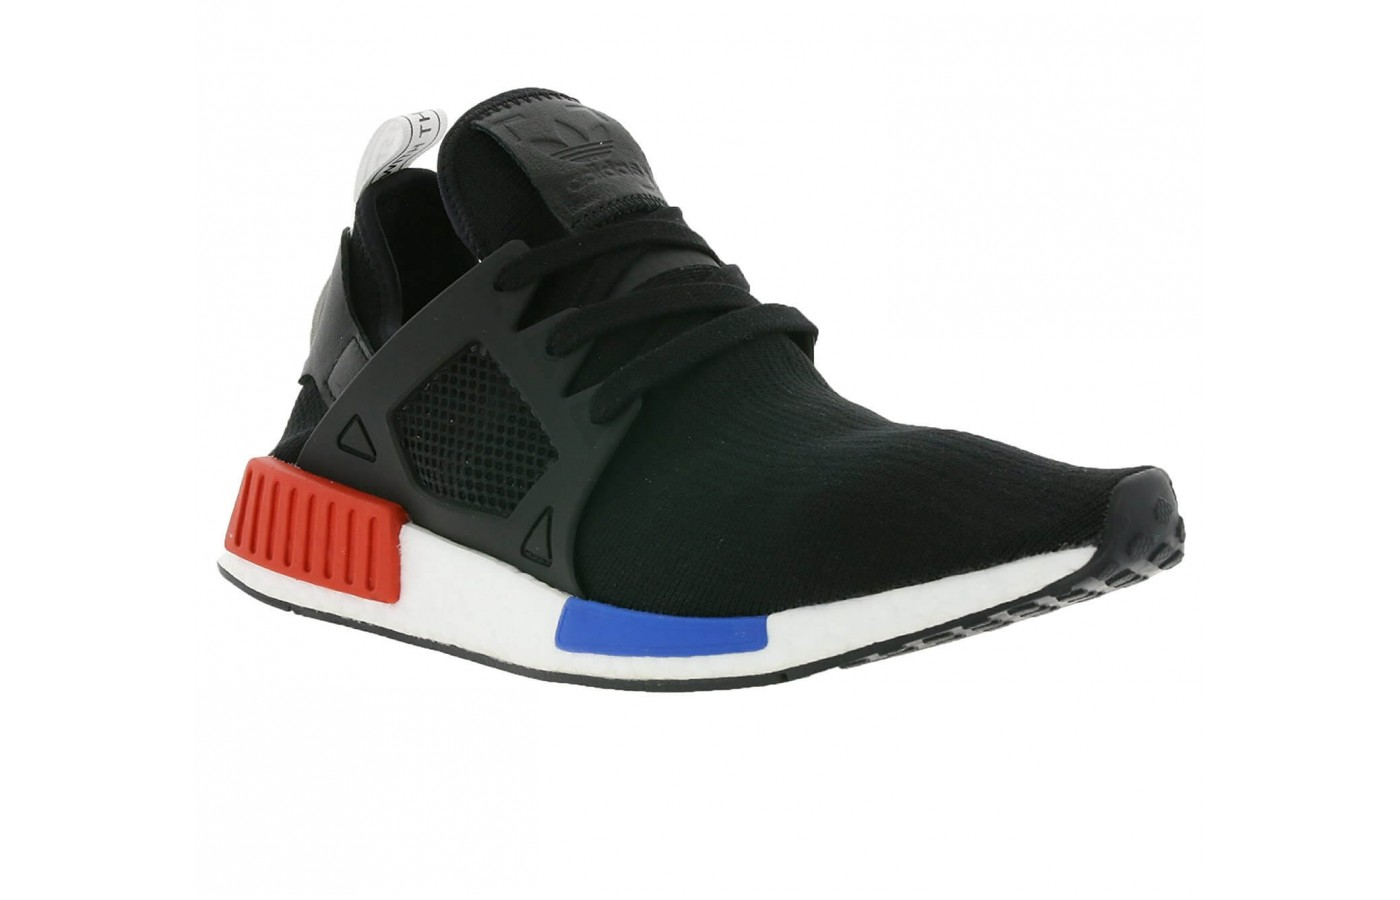 59fb4e06229e Adidas NMD XR1 Reviewed - To Buy or Not in Apr 2019